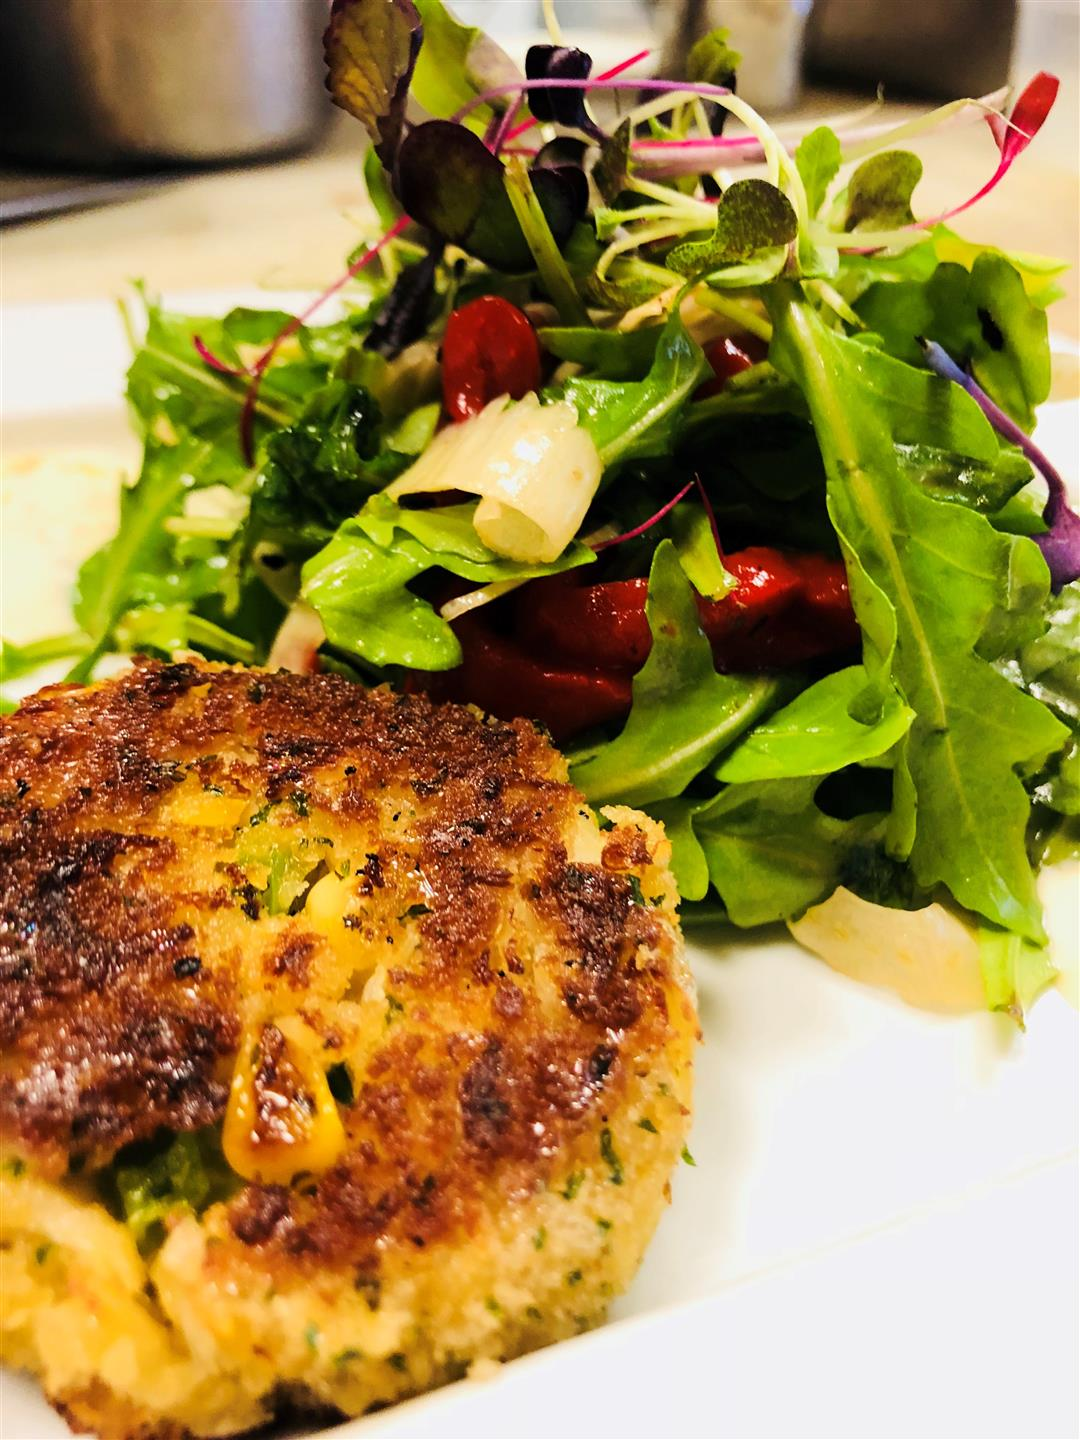 a crab cake next to a salad with beets on a white plate